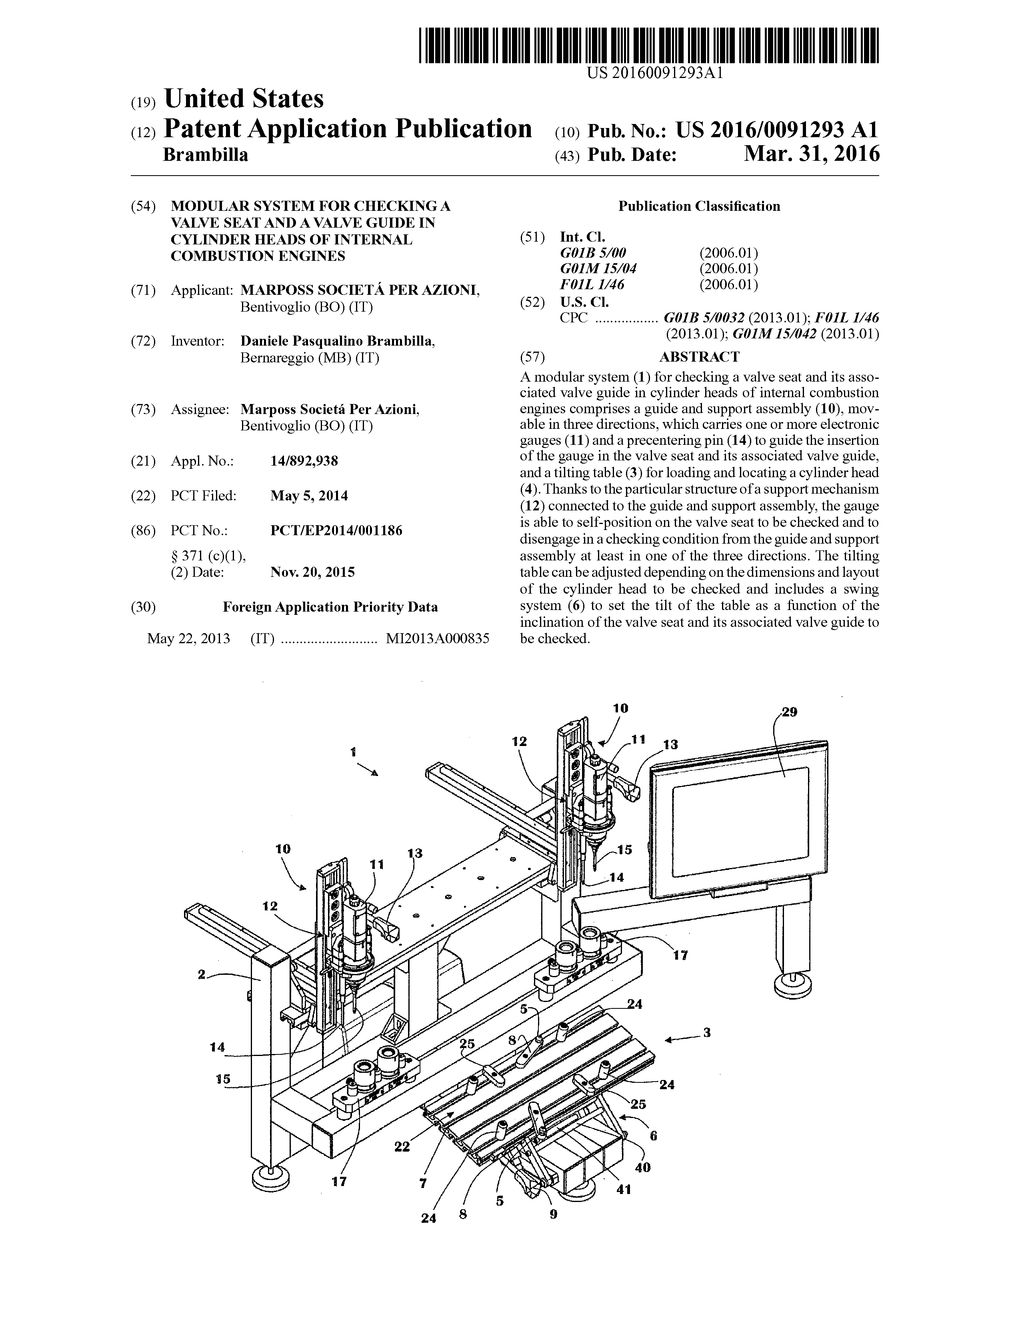 modular system for checking a valve seat and a valve guide in l head engine diagram modular system for checking a valve seat and a valve guide in cylinder heads of internal combustion engines diagram, schematic, and image 01